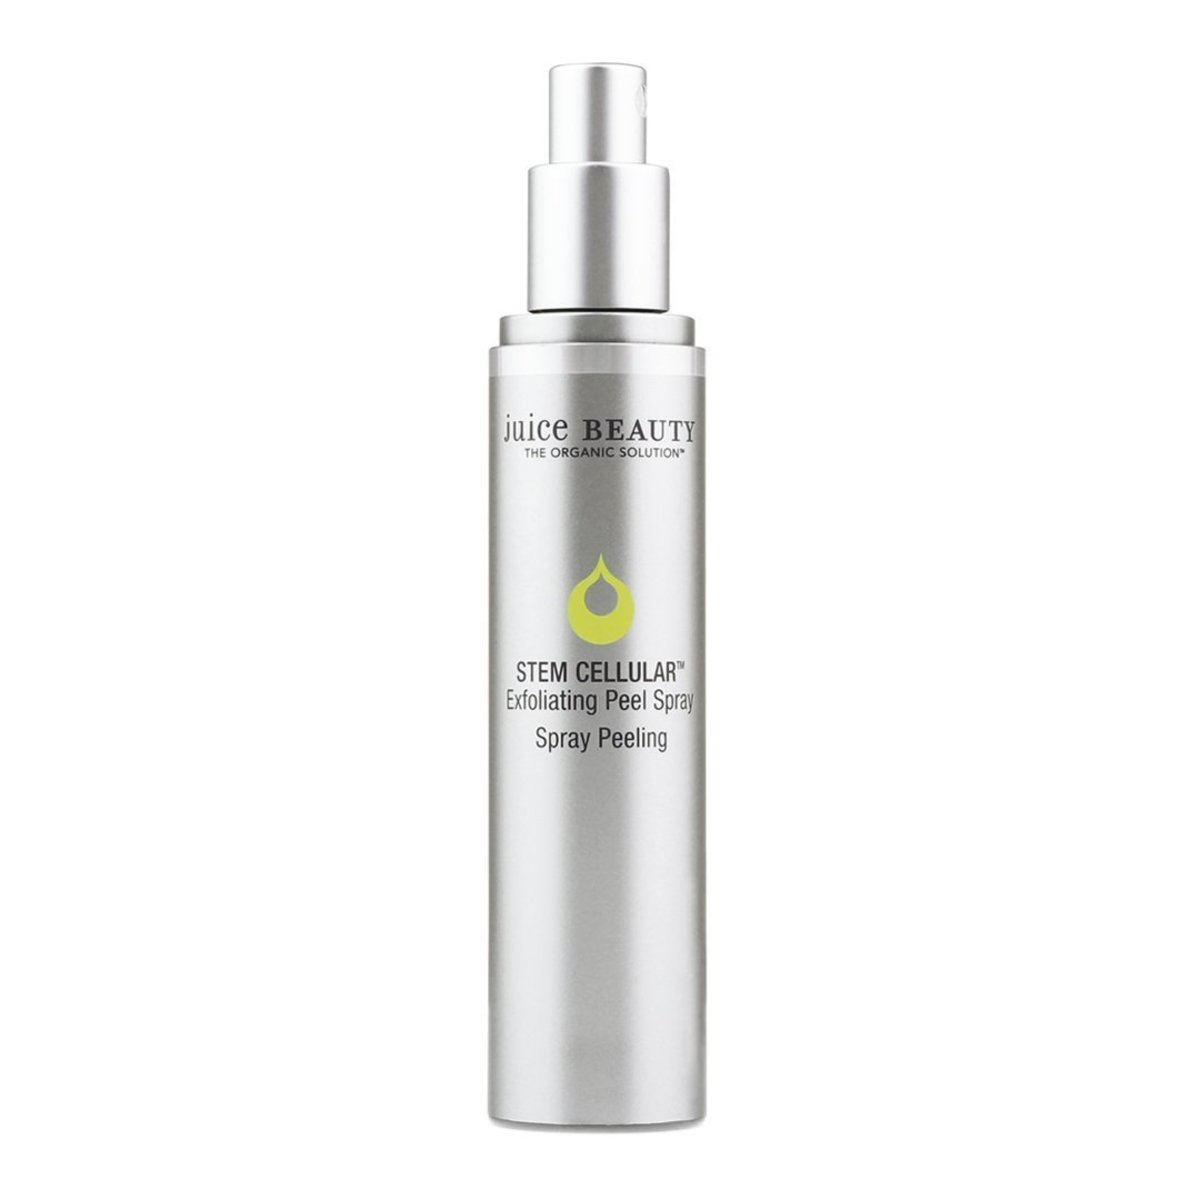 juice_beauty_stem_cellular_exfoliating_peel_spray_at_credo_beauty